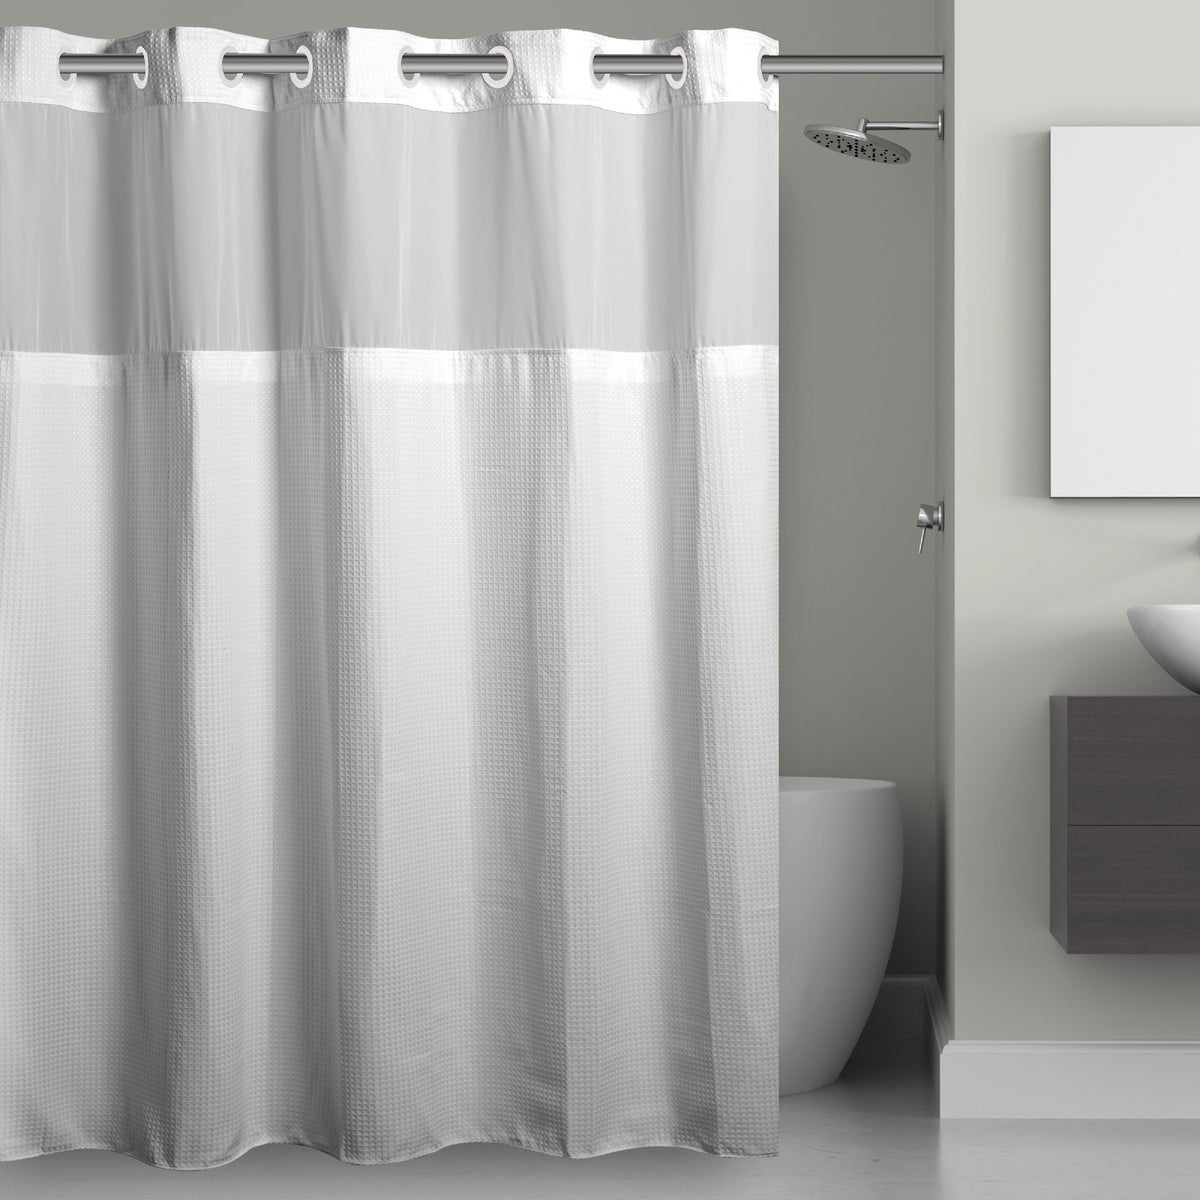 HOOKLESS SHOWER CURTAIN - RBH40LS01 by Swing A Way Mfg Co